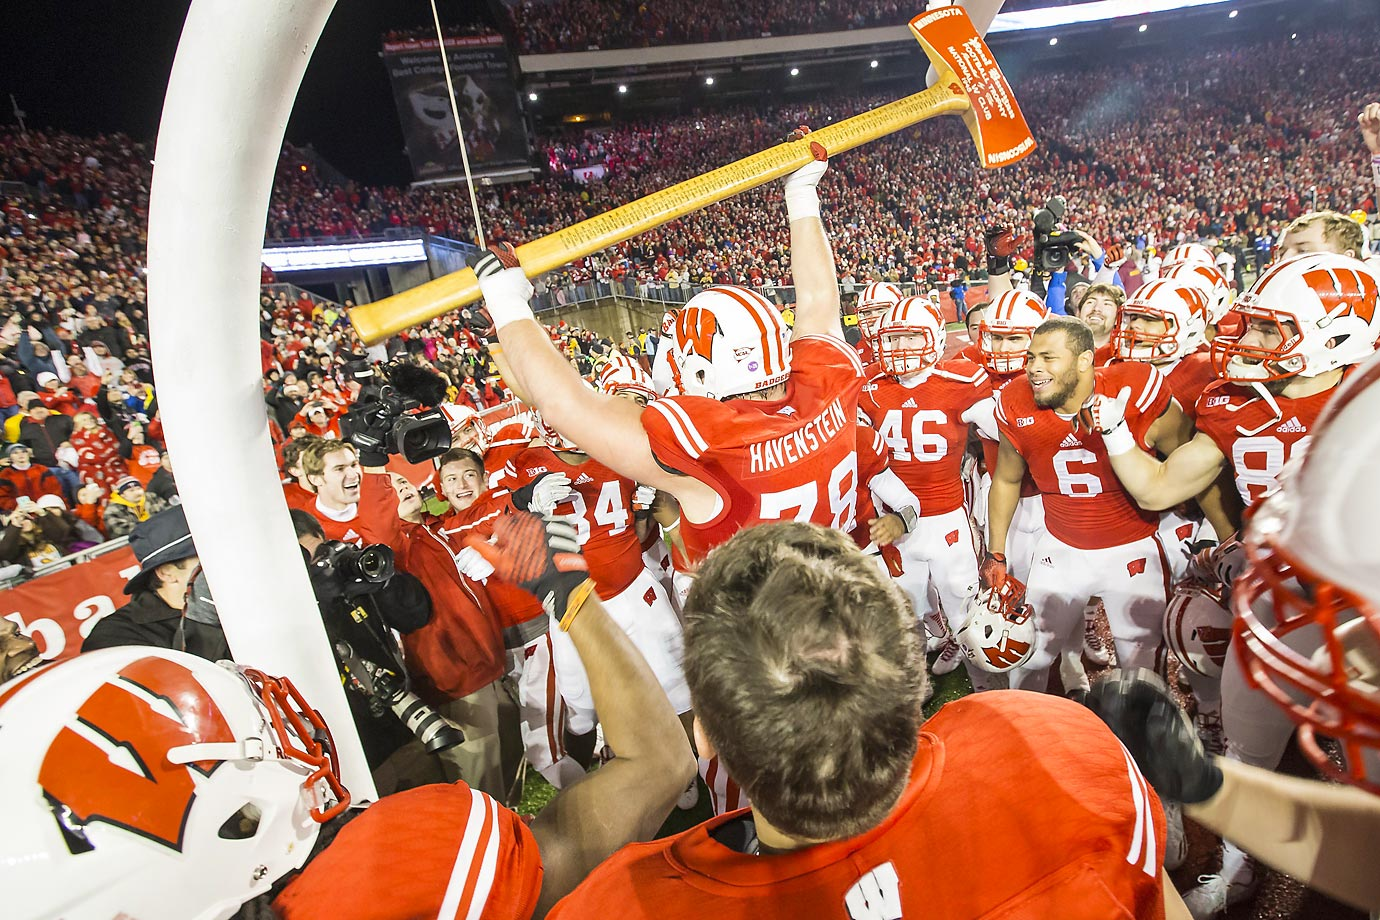 Rob Havenstein celebrates with Paul Bunyan's Axe after his Wisconsin team defeated the Minnesota Golden Gophers 34-24.